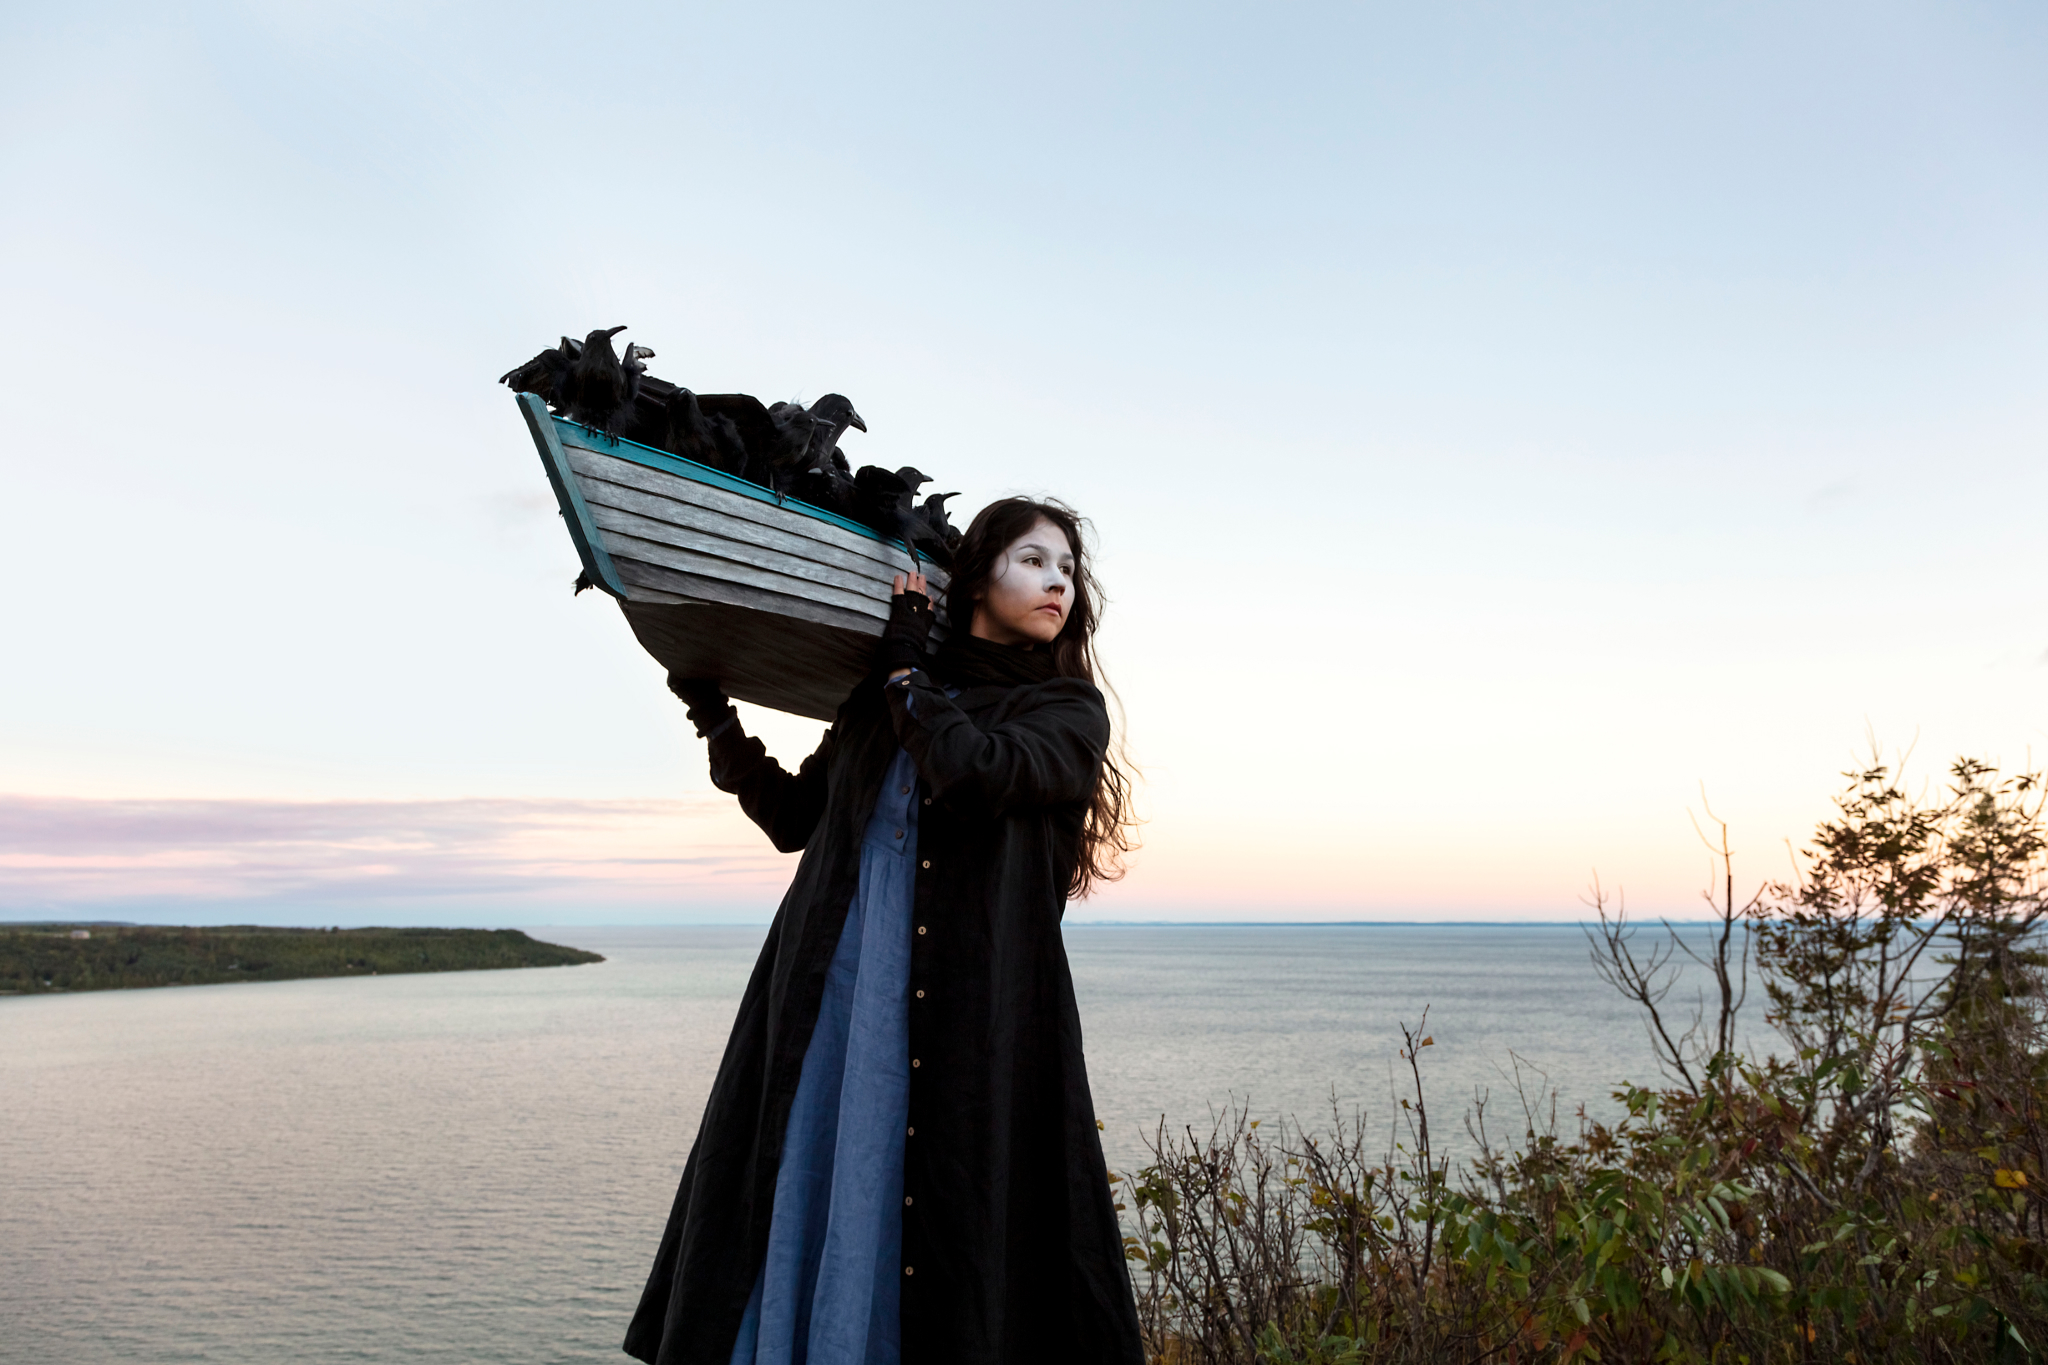 On the Edge of this Immensity by Meryl McMaster